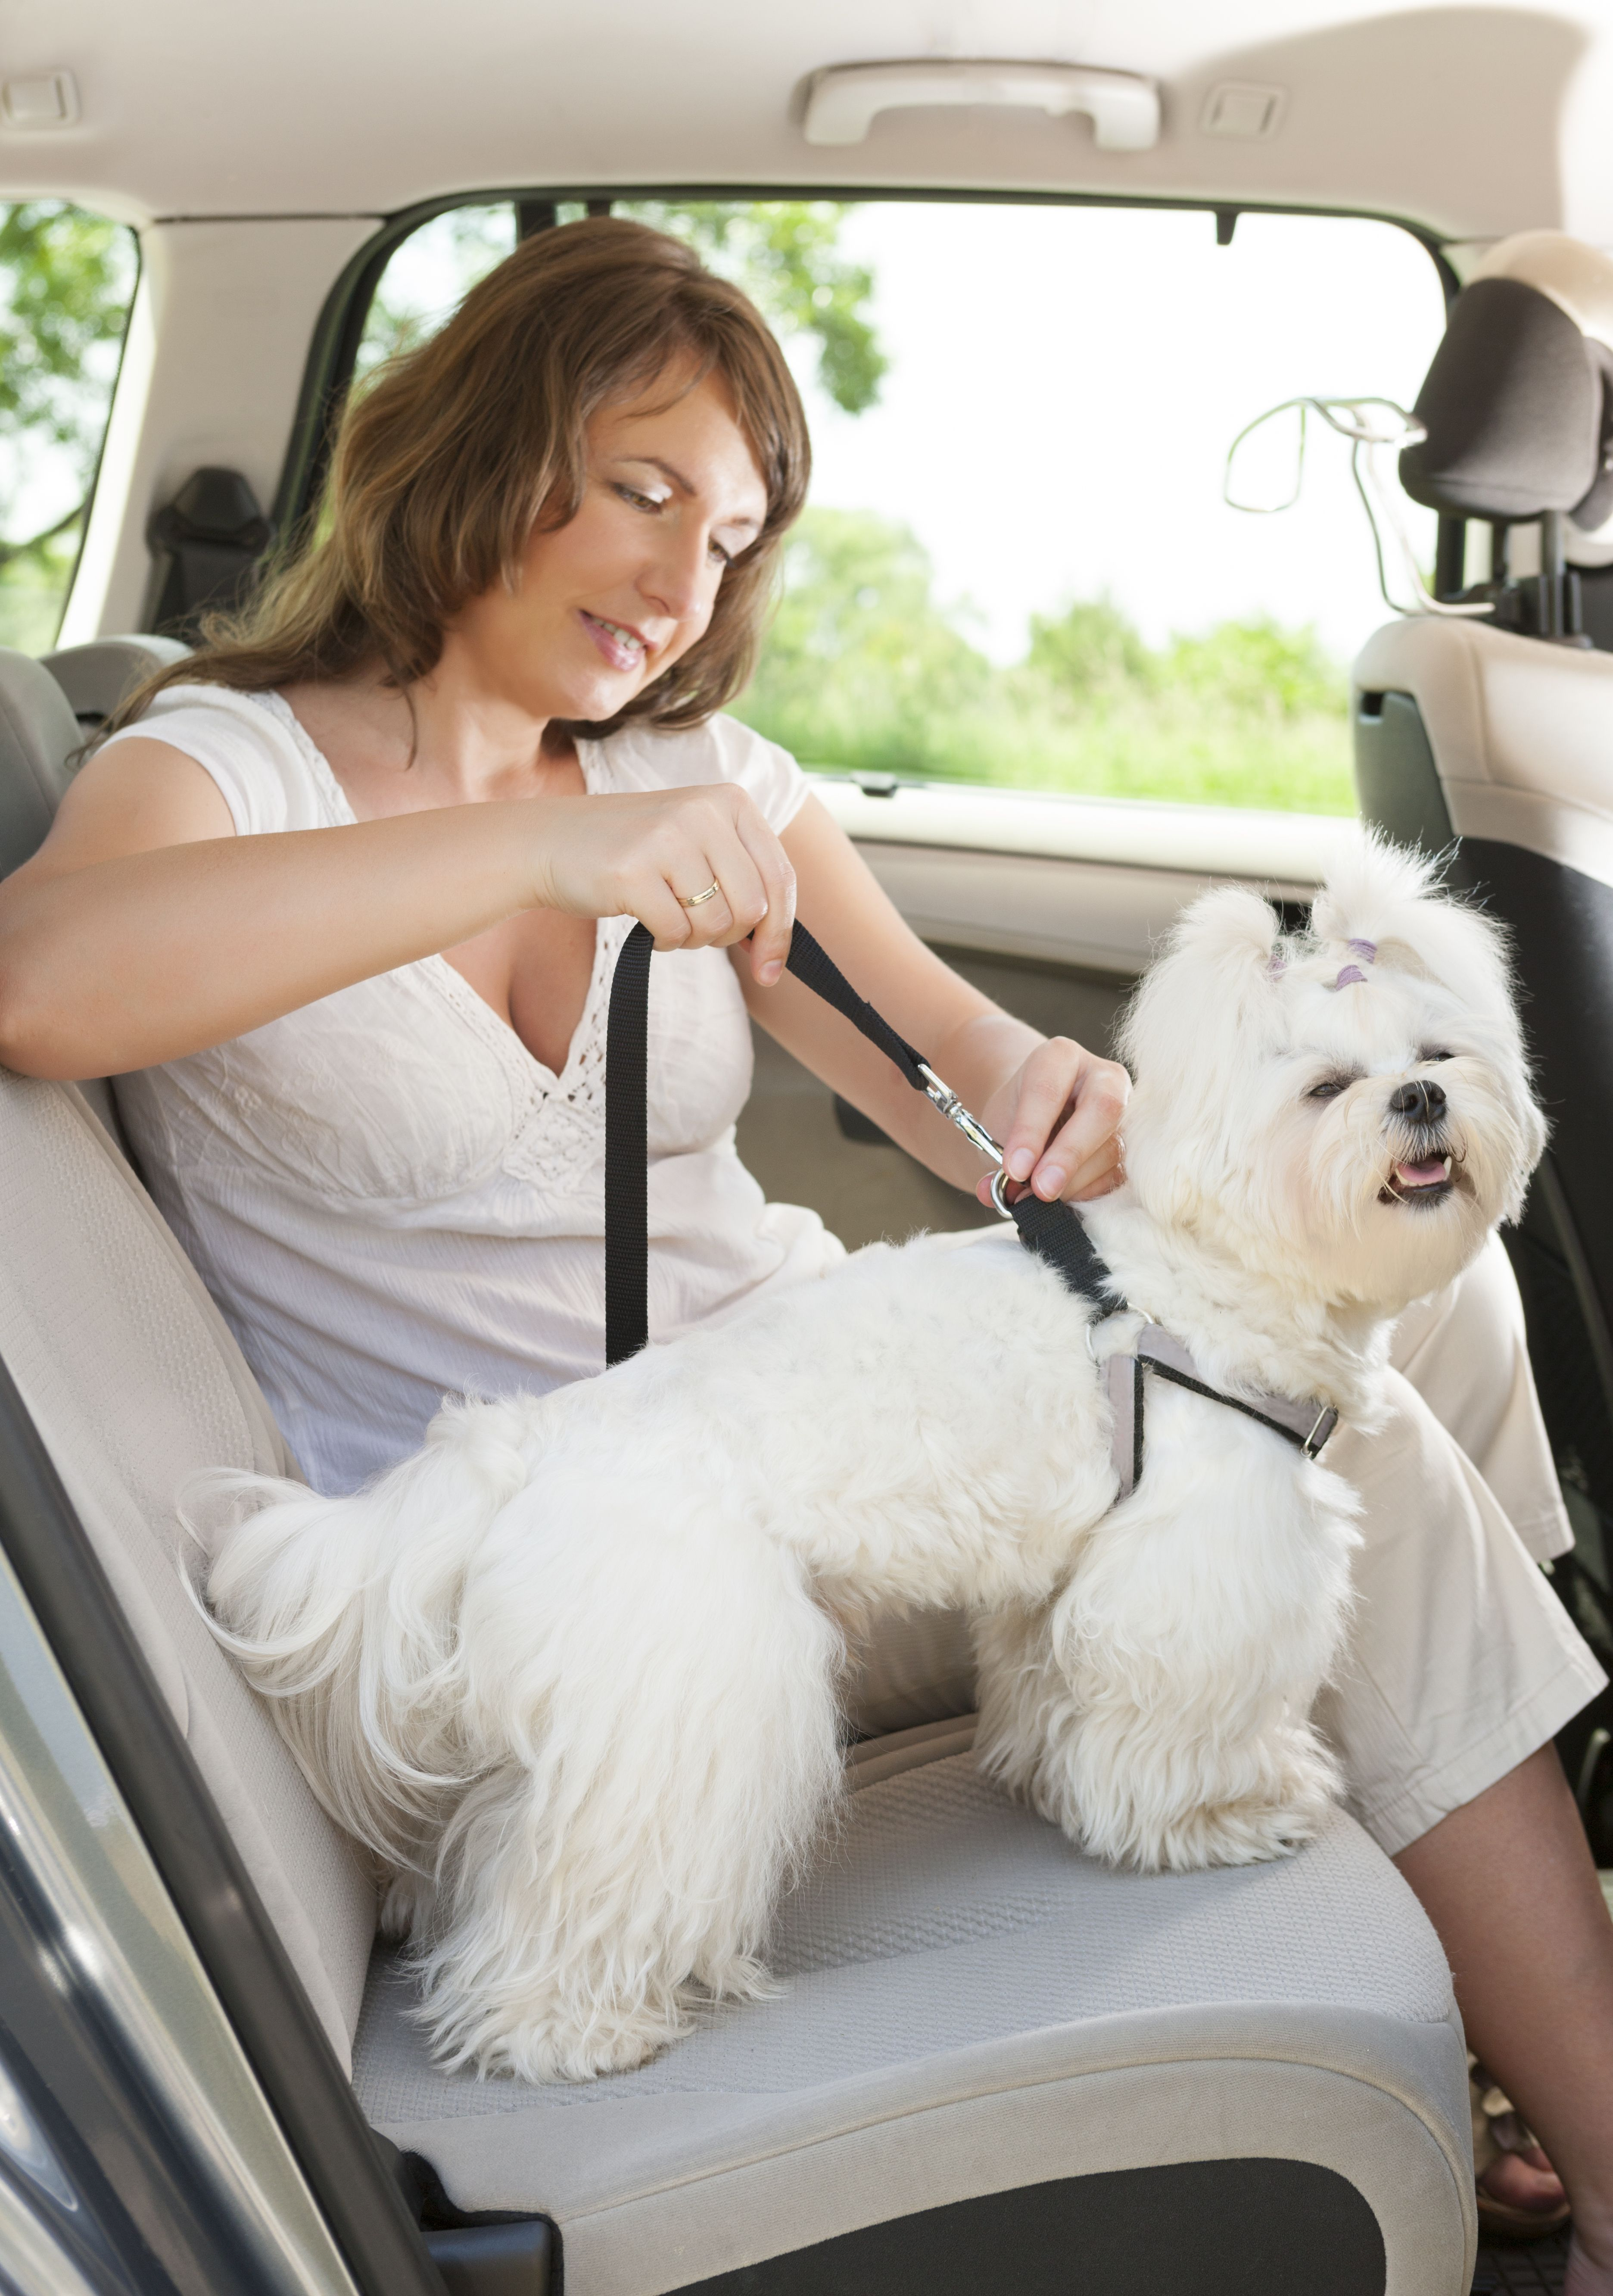 Owner Of The Dog Attaching Safety Leash To Harness To Make A